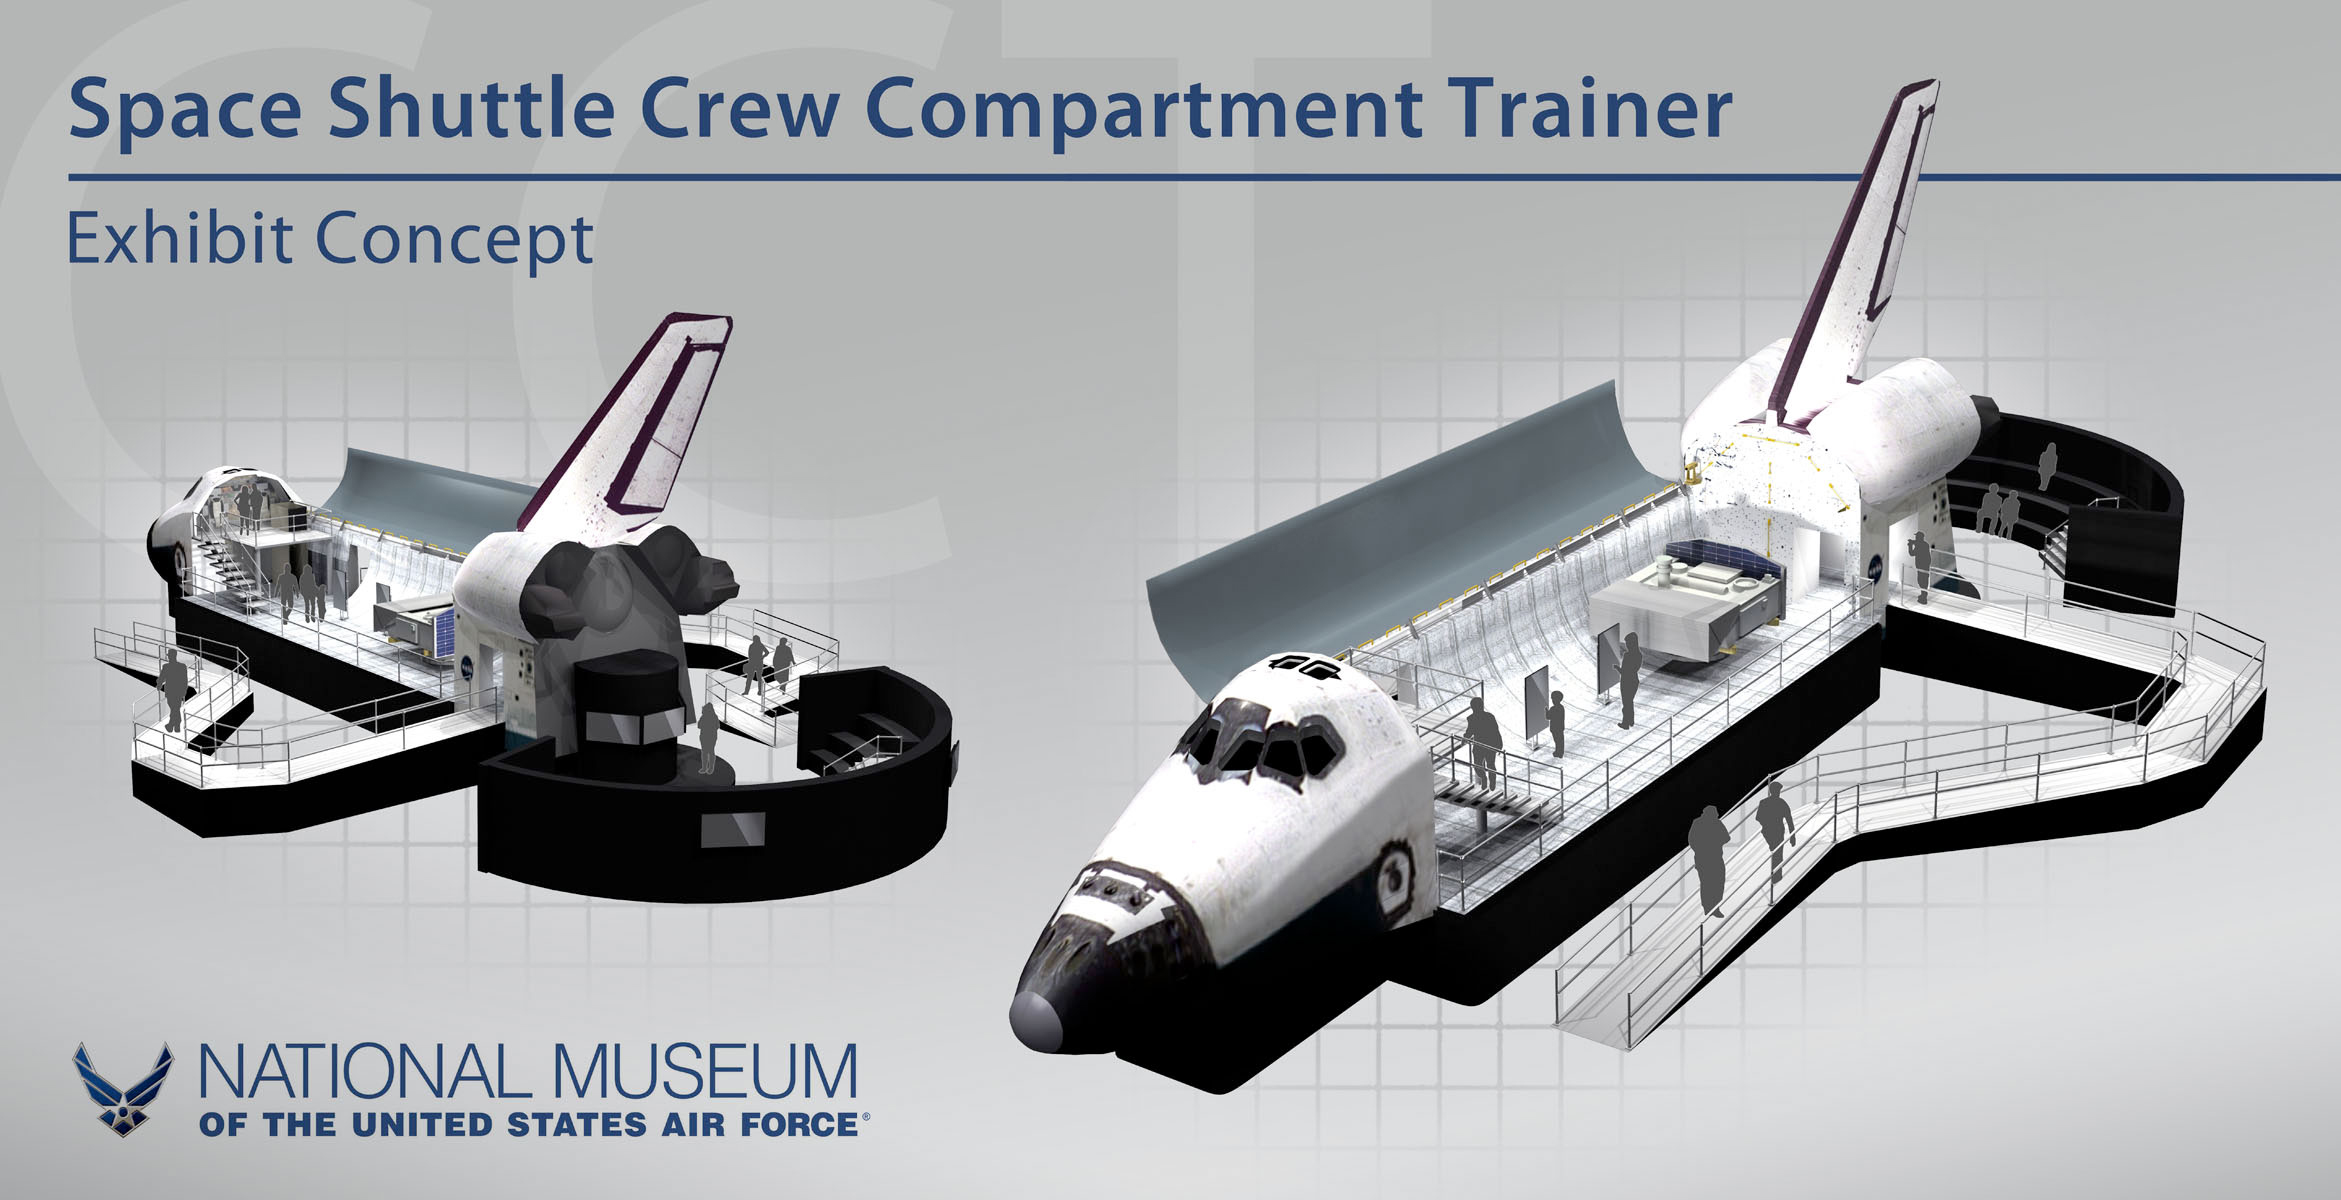 NASA Space Shuttle Trainer Lands At US Air Force Museum CollectSPACE - Air force museums in us